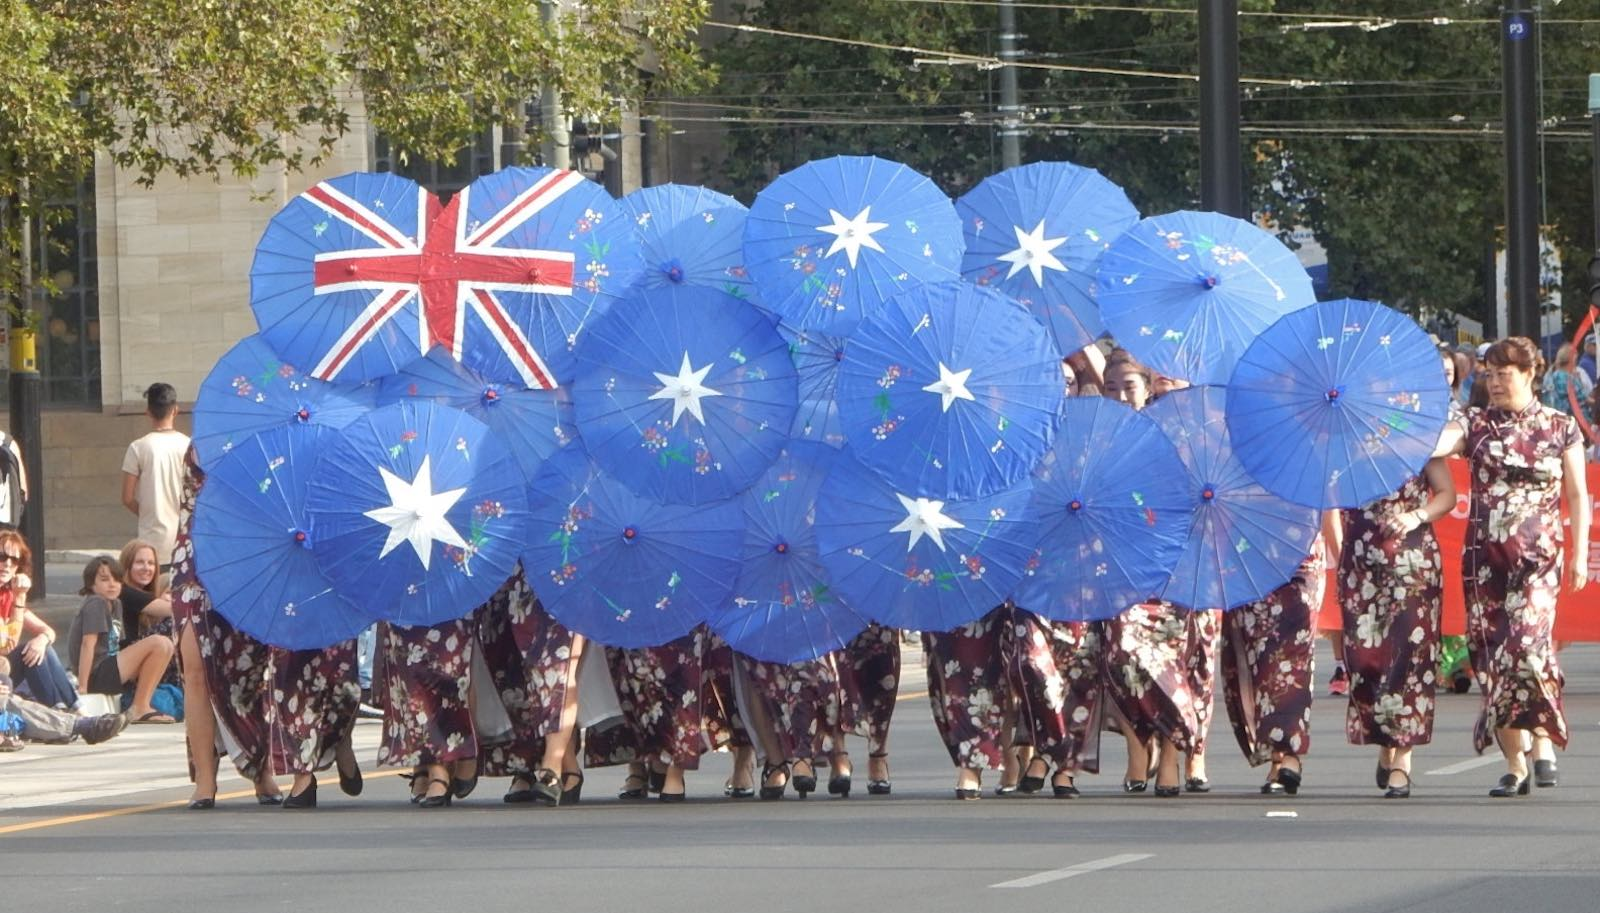 Australia Day parade, Adelaide 2019 (Photo: Michael Coghlan/Flickr)